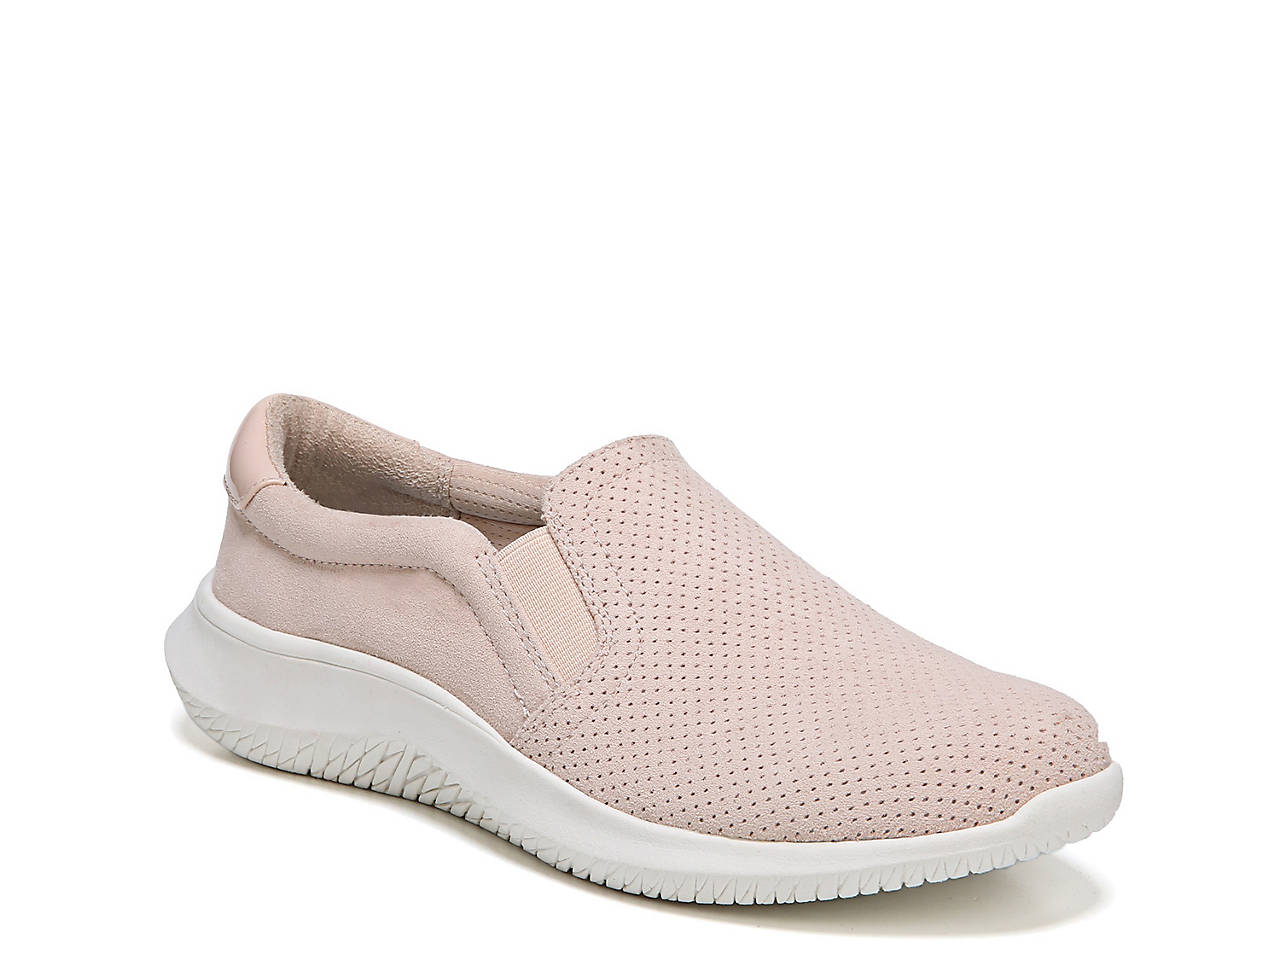 Dr. Scholl's Fresh Two Sneakers Women's Shoes s2vAR